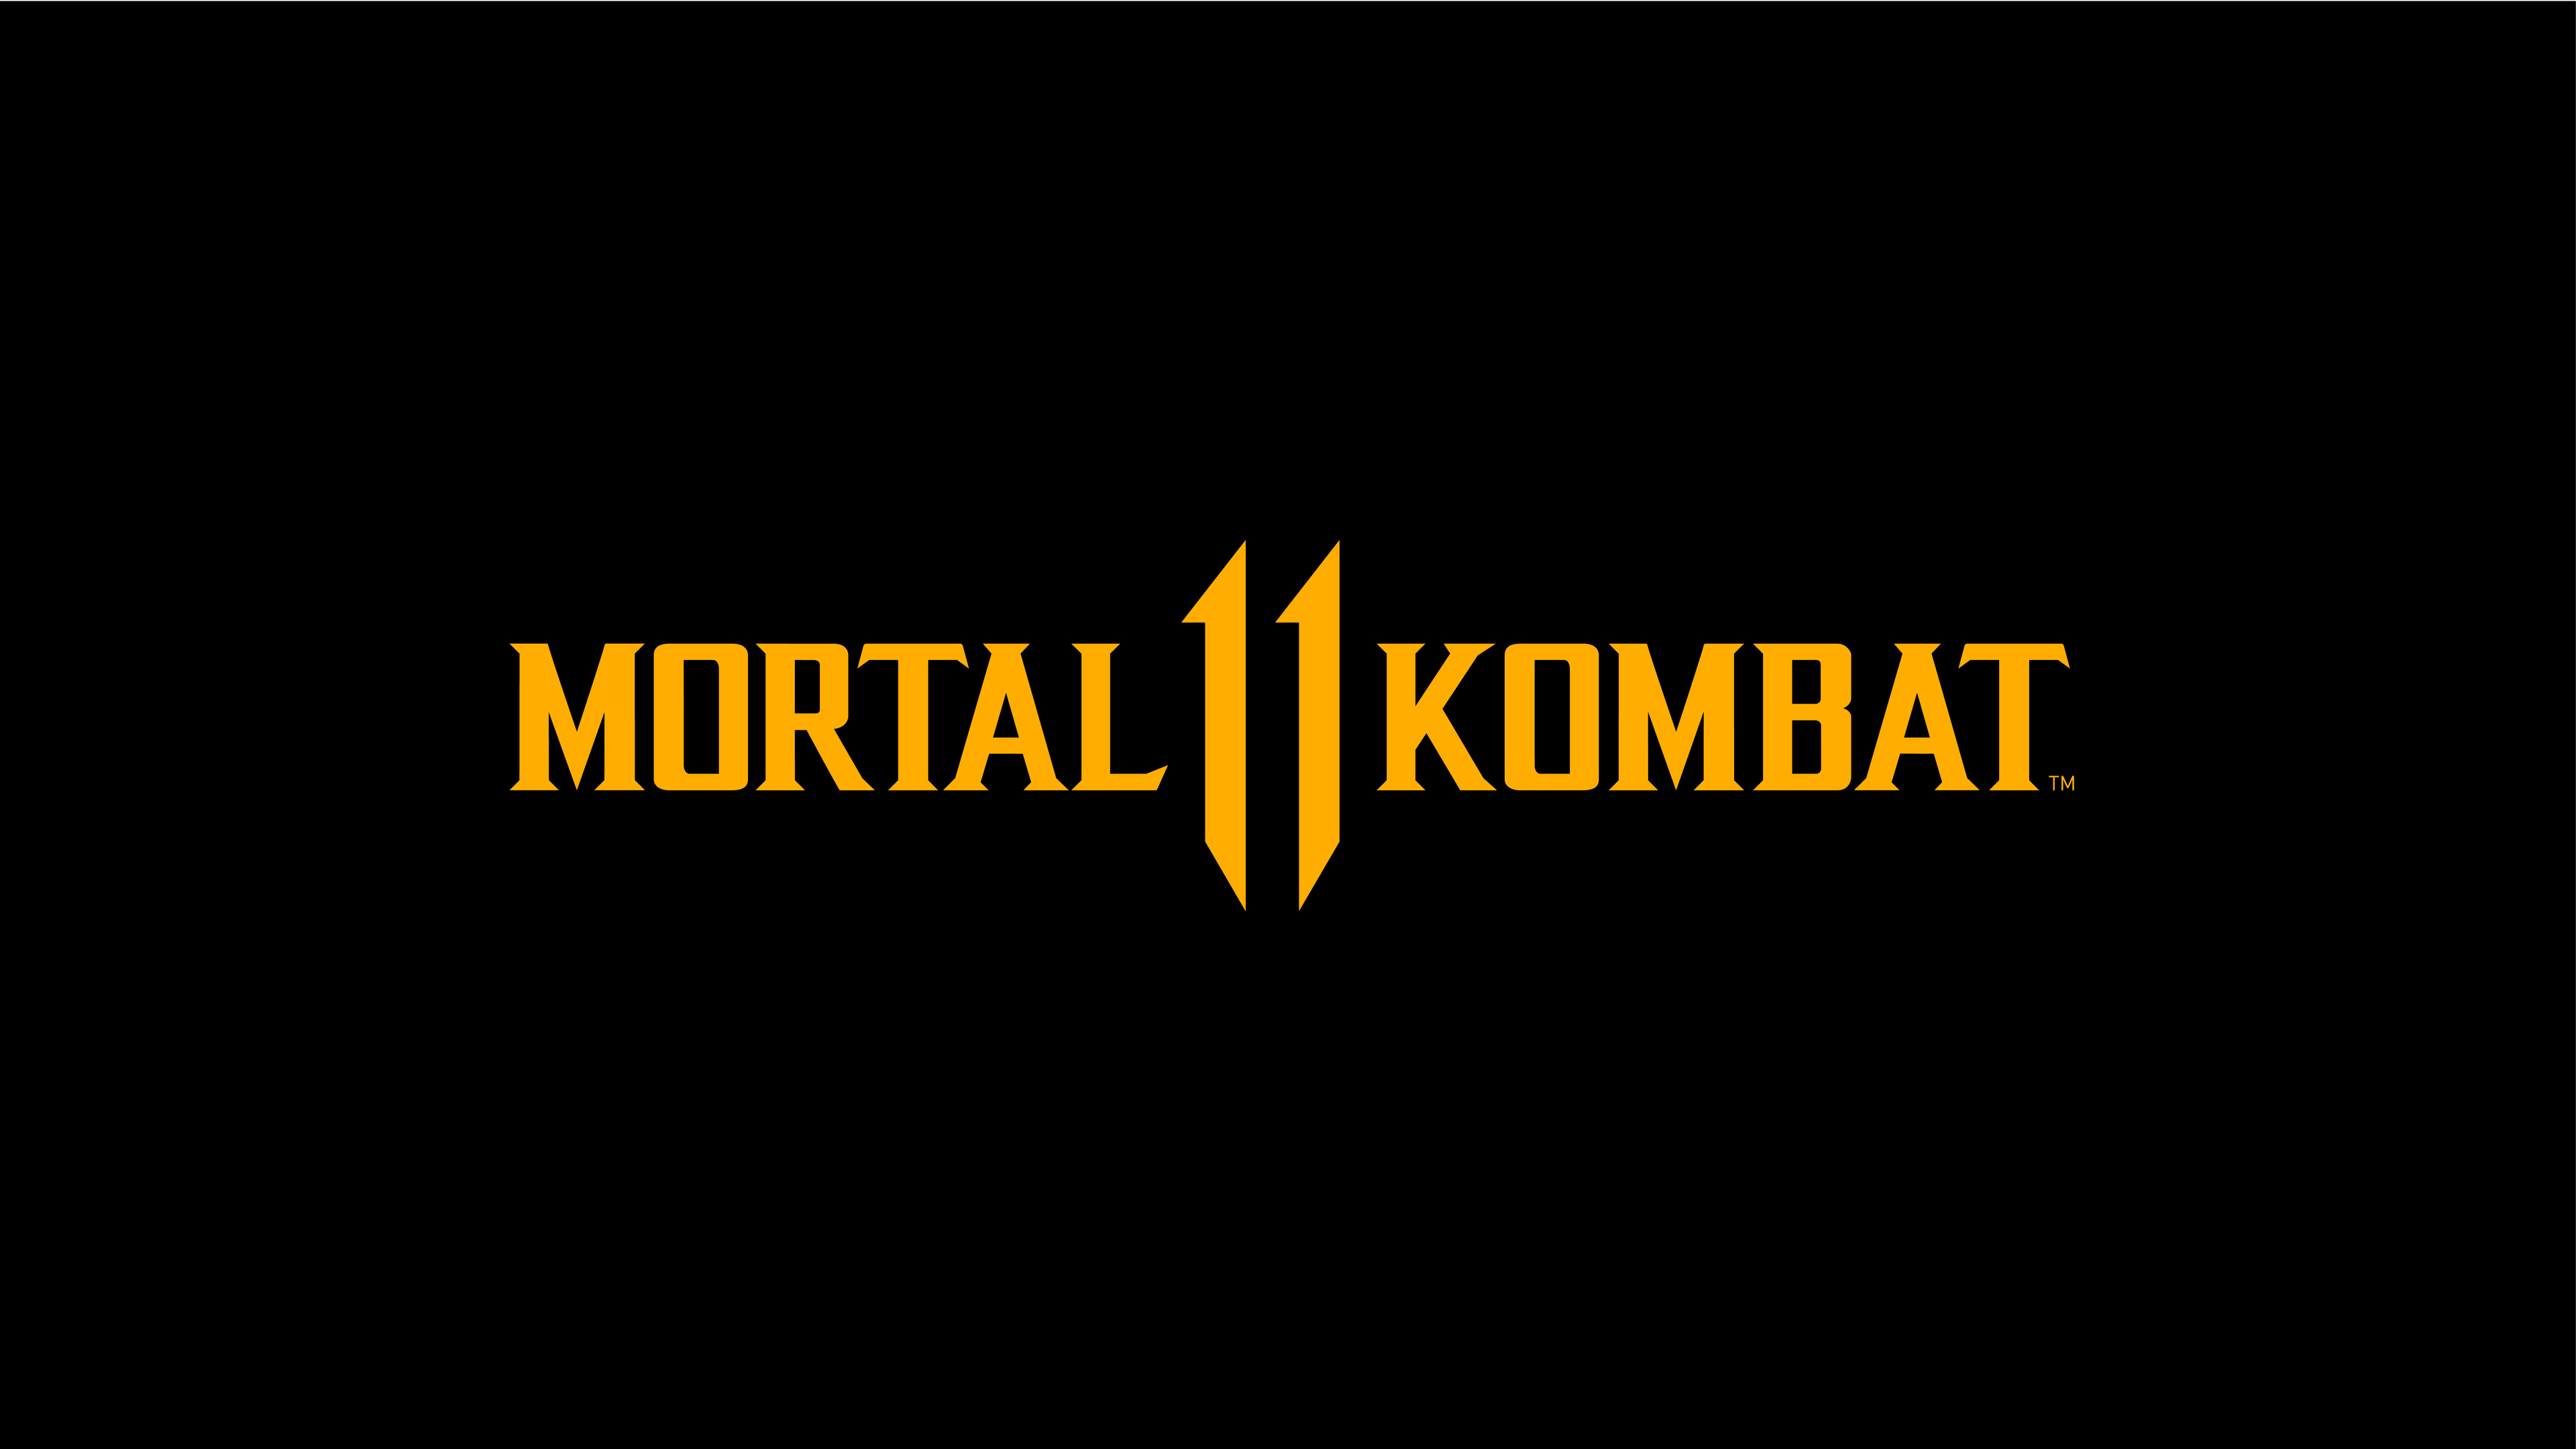 mortal kombat 11 logo dark black 4k 1560534712 - Mortal Kombat 11 Logo Dark Black 4k - mortal kombat wallpapers, mortal kombat 11 wallpapers, hd-wallpapers, games wallpapers, 4k-wallpapers, 2019 games wallpapers